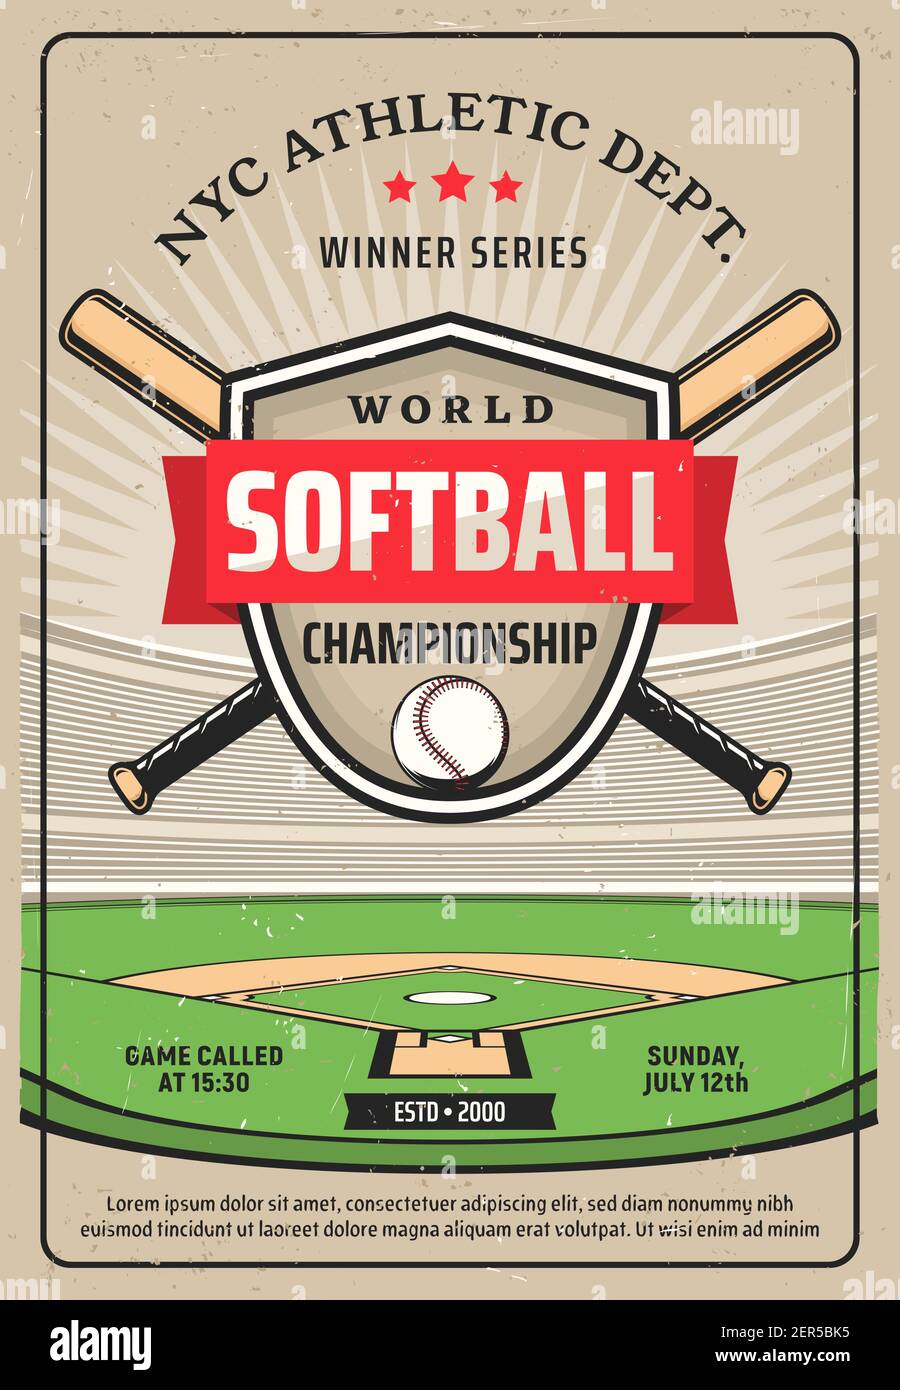 Softball championship grunge vector flyer, sport game tournament. Crossed baseball bats, ball and shield on softball field. Nyc athletic dept game win Stock Vector